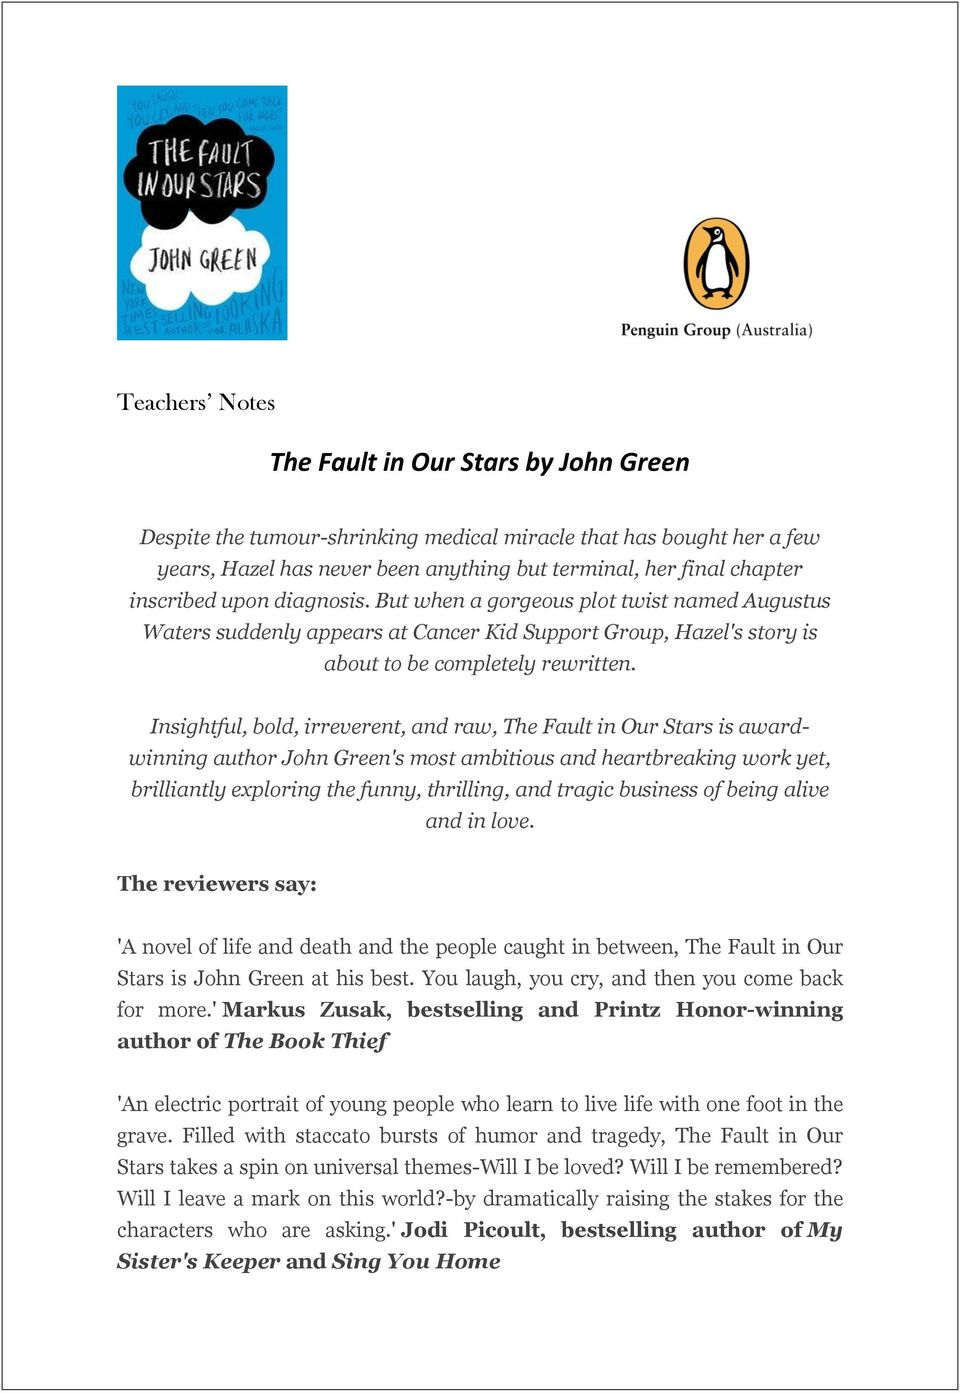 Insightful, bold, irreverent, and raw, The Fault in Our Stars is awardwinning author John Green's most ambitious and heartbreaking work yet, brilliantly exploring the funny, thrilling, and tragic